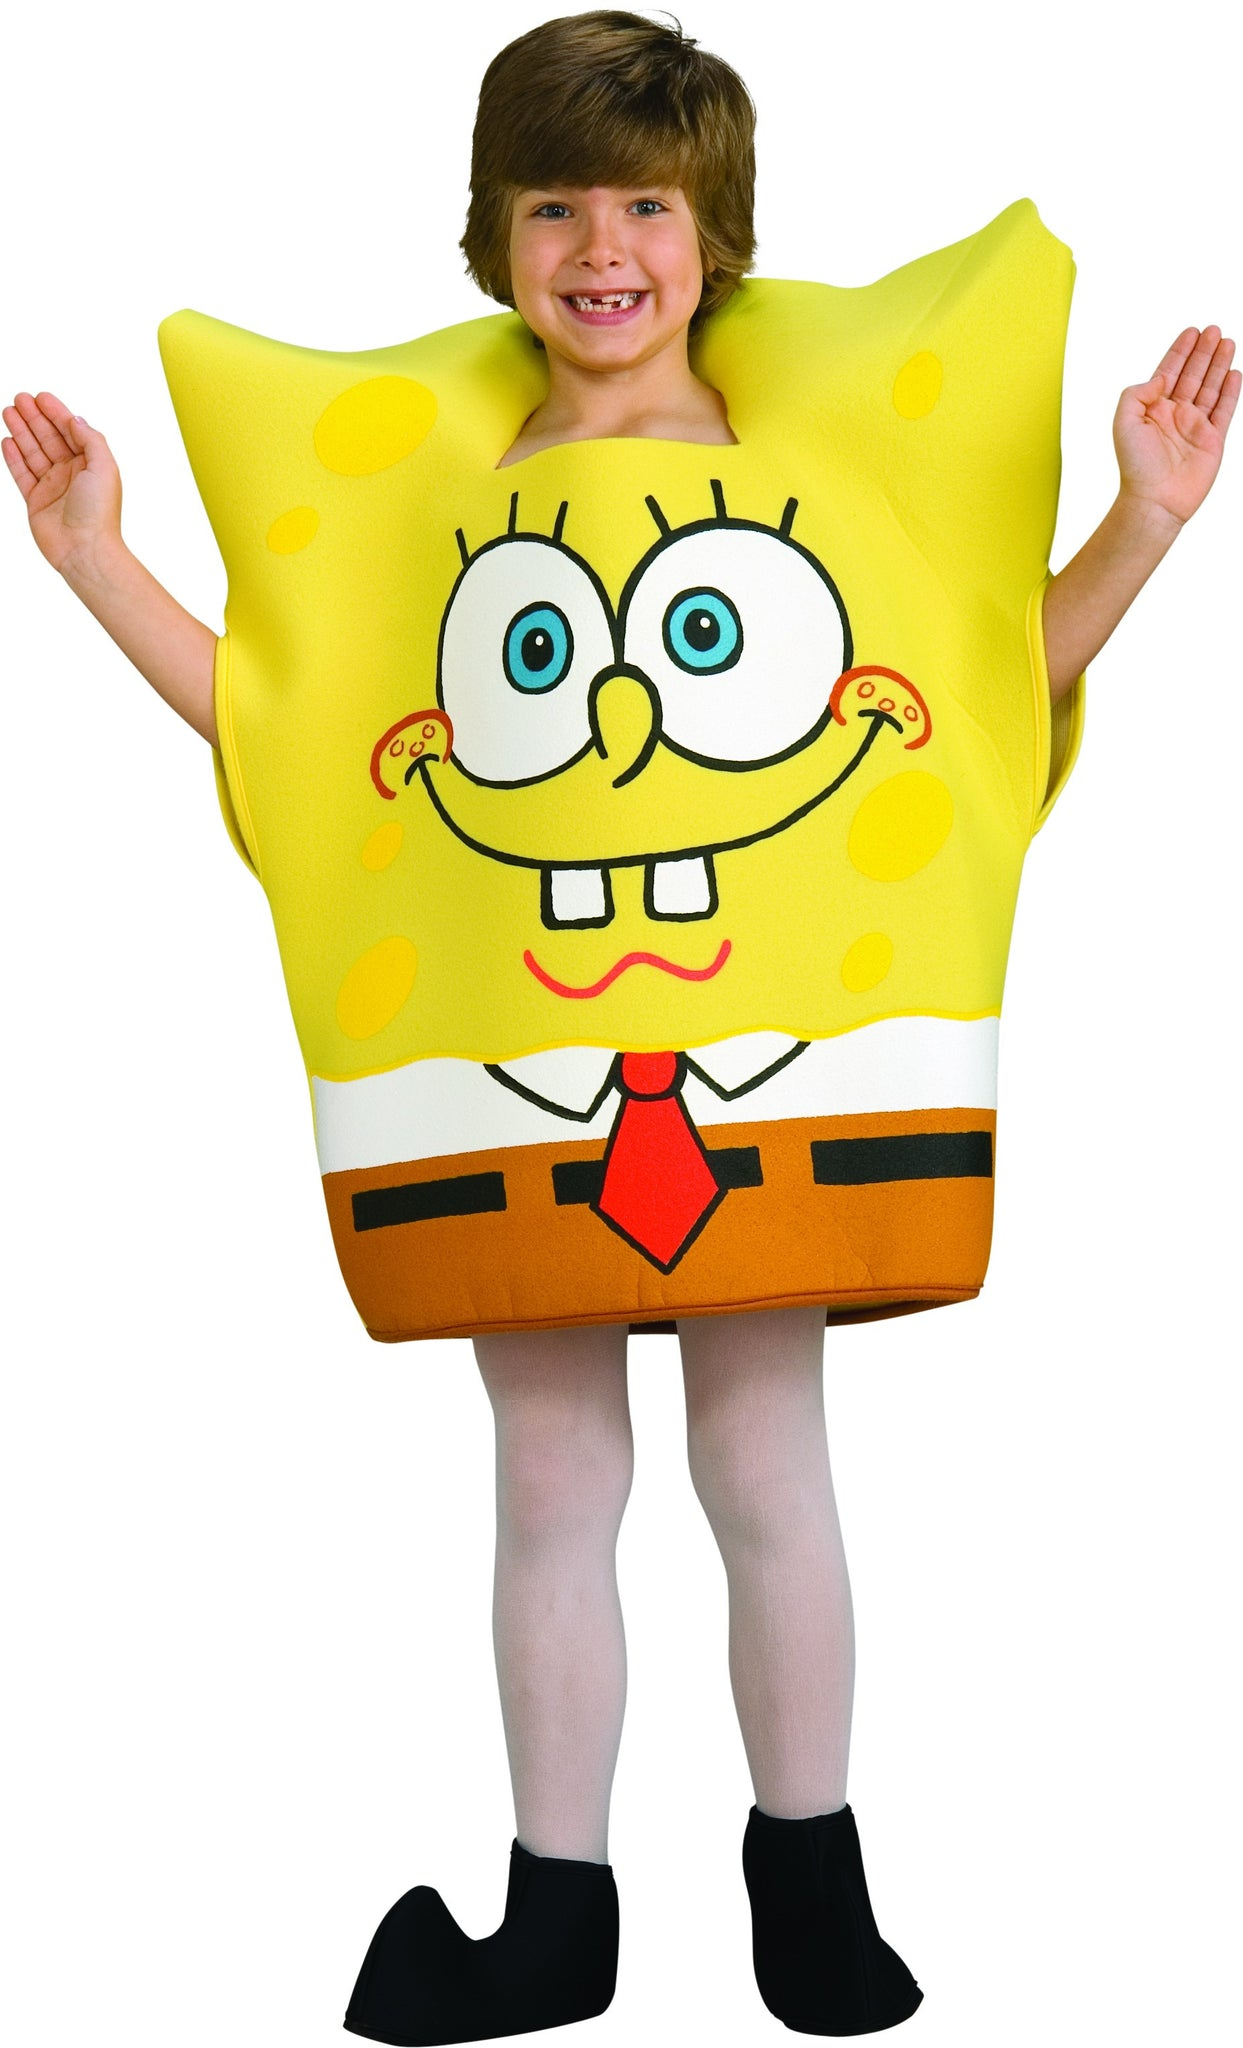 SPONGEBOB SQUAREPANTS FOAM COSTUME, CHILD - TODDLER